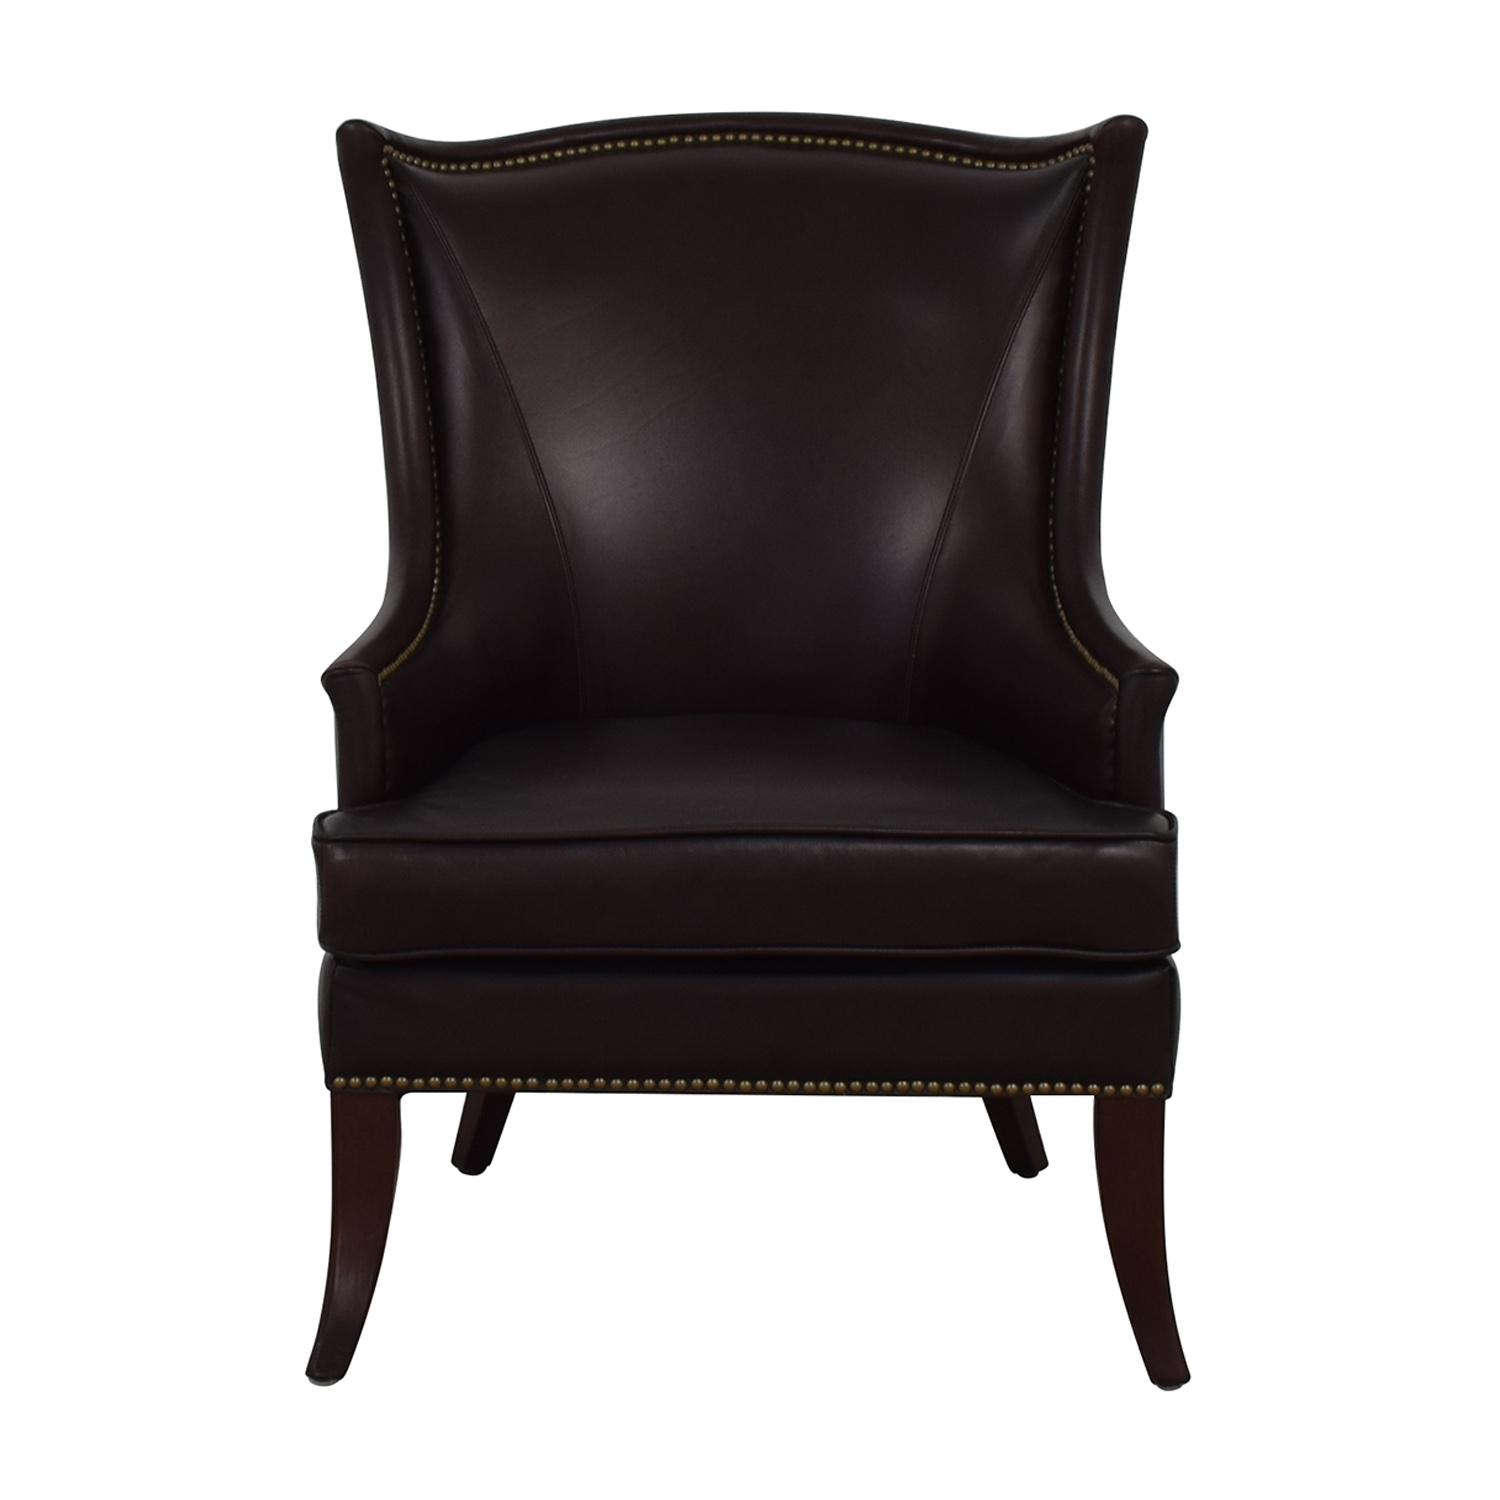 Gentil Buy Bombay Company Brown Nailhead Leather Accent Chair Bombay Company Accent  Chairs